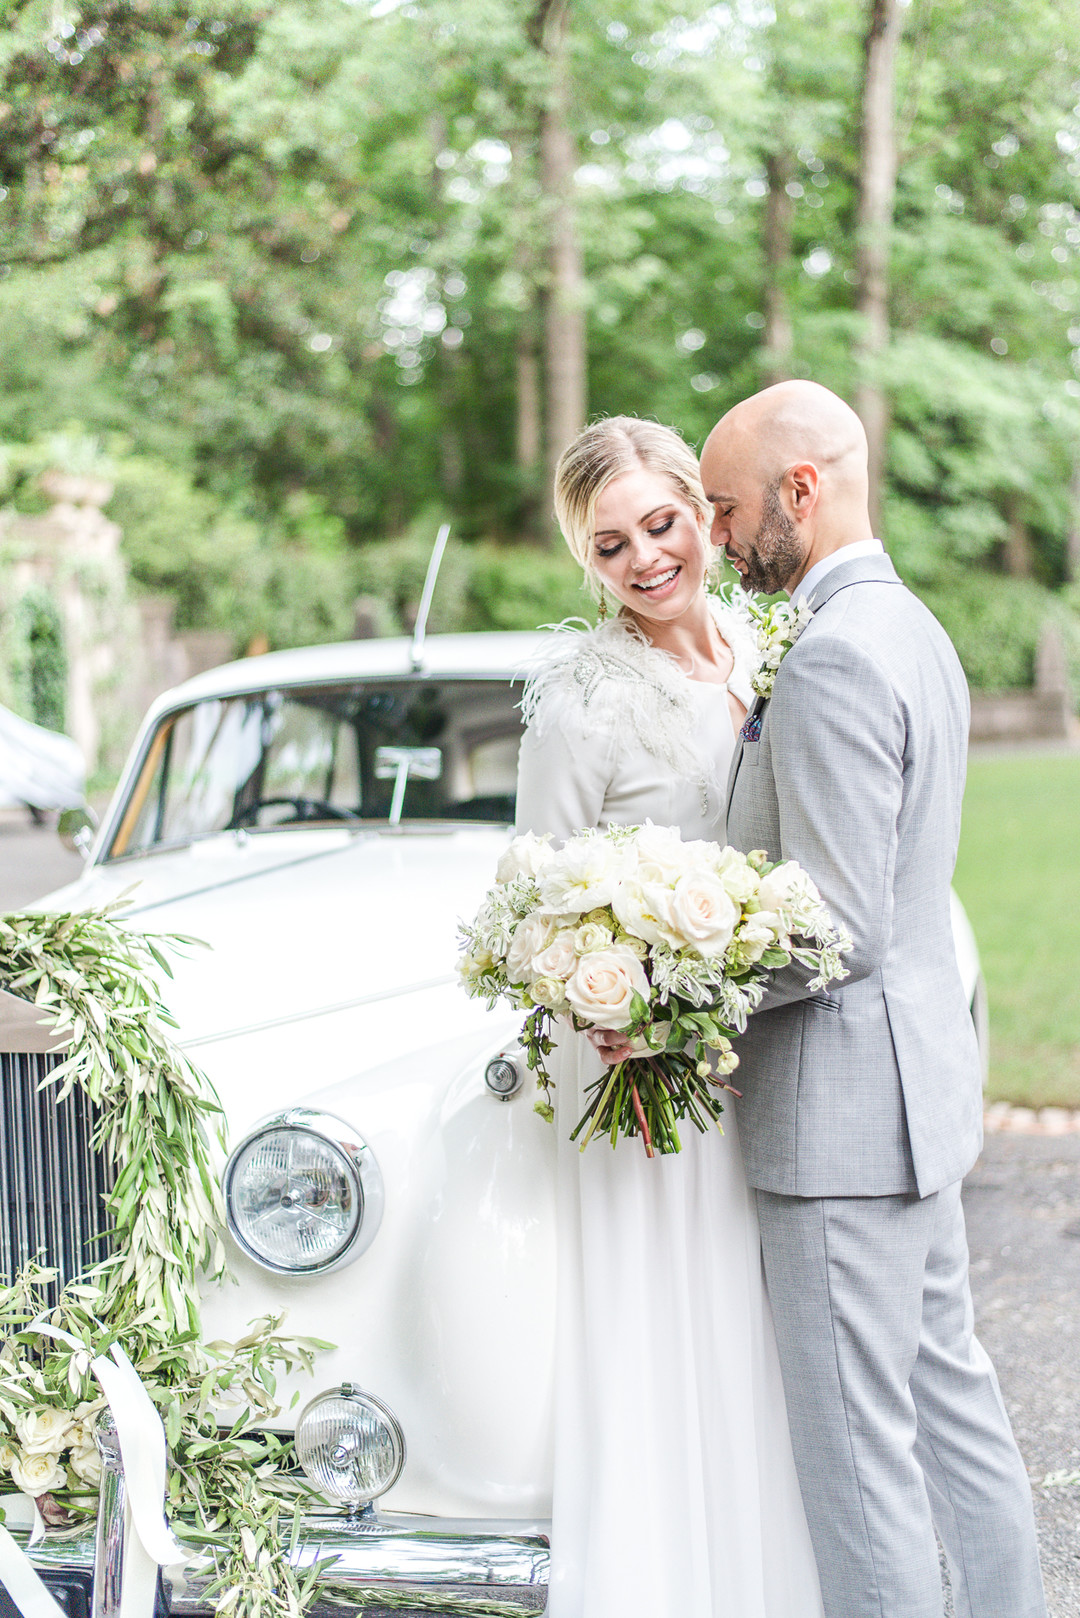 bride and groom posing in front of a white vintage car with a decorated front grill